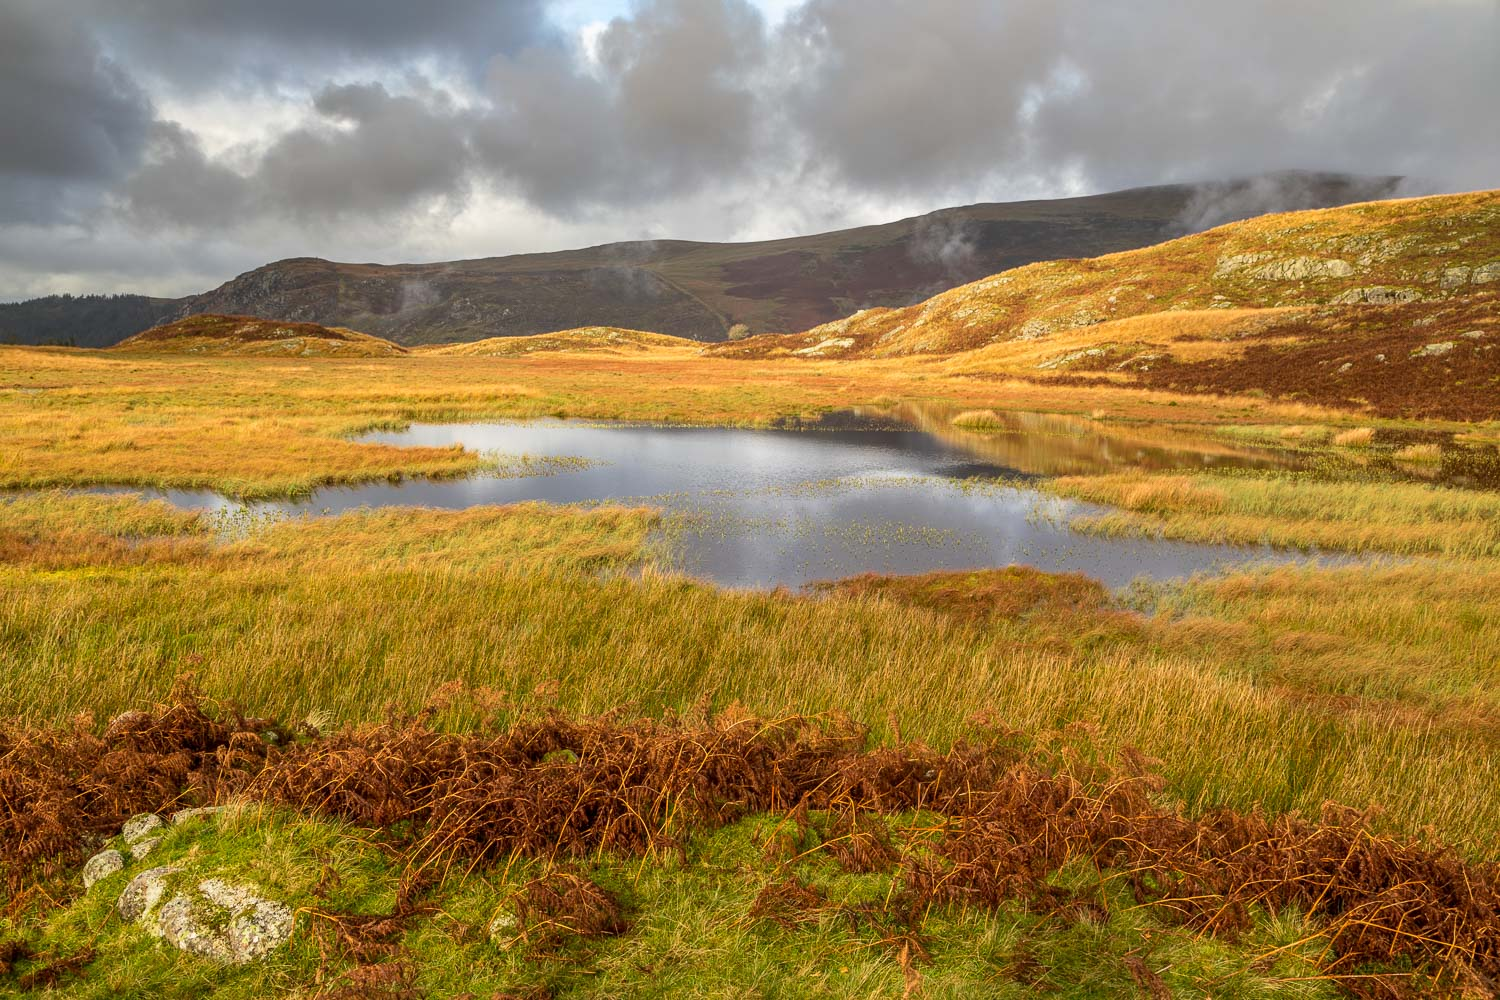 Siney Tarn